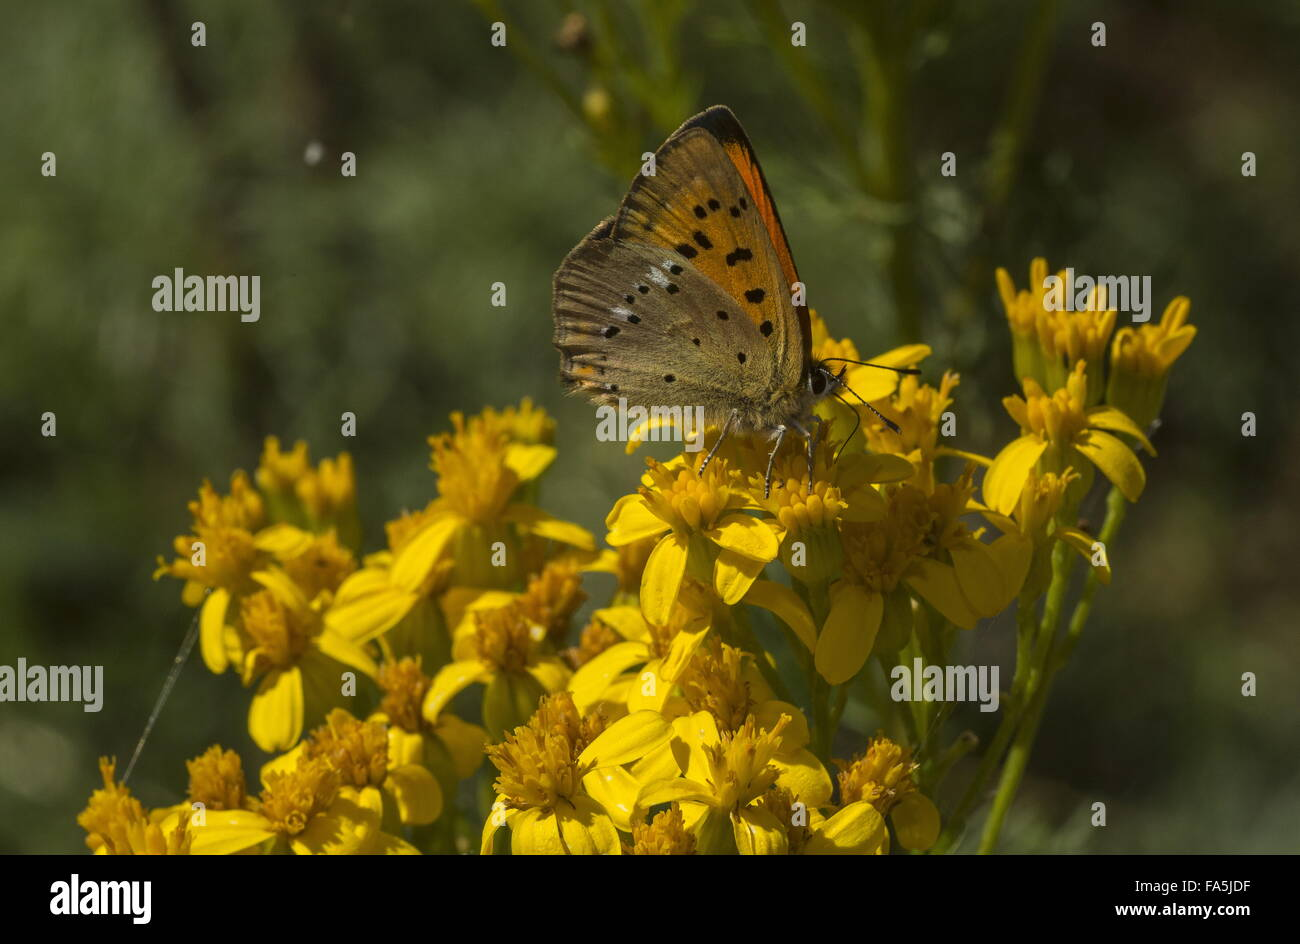 Female scarce copper visiting ragwort flowers, Italy. - Stock Image